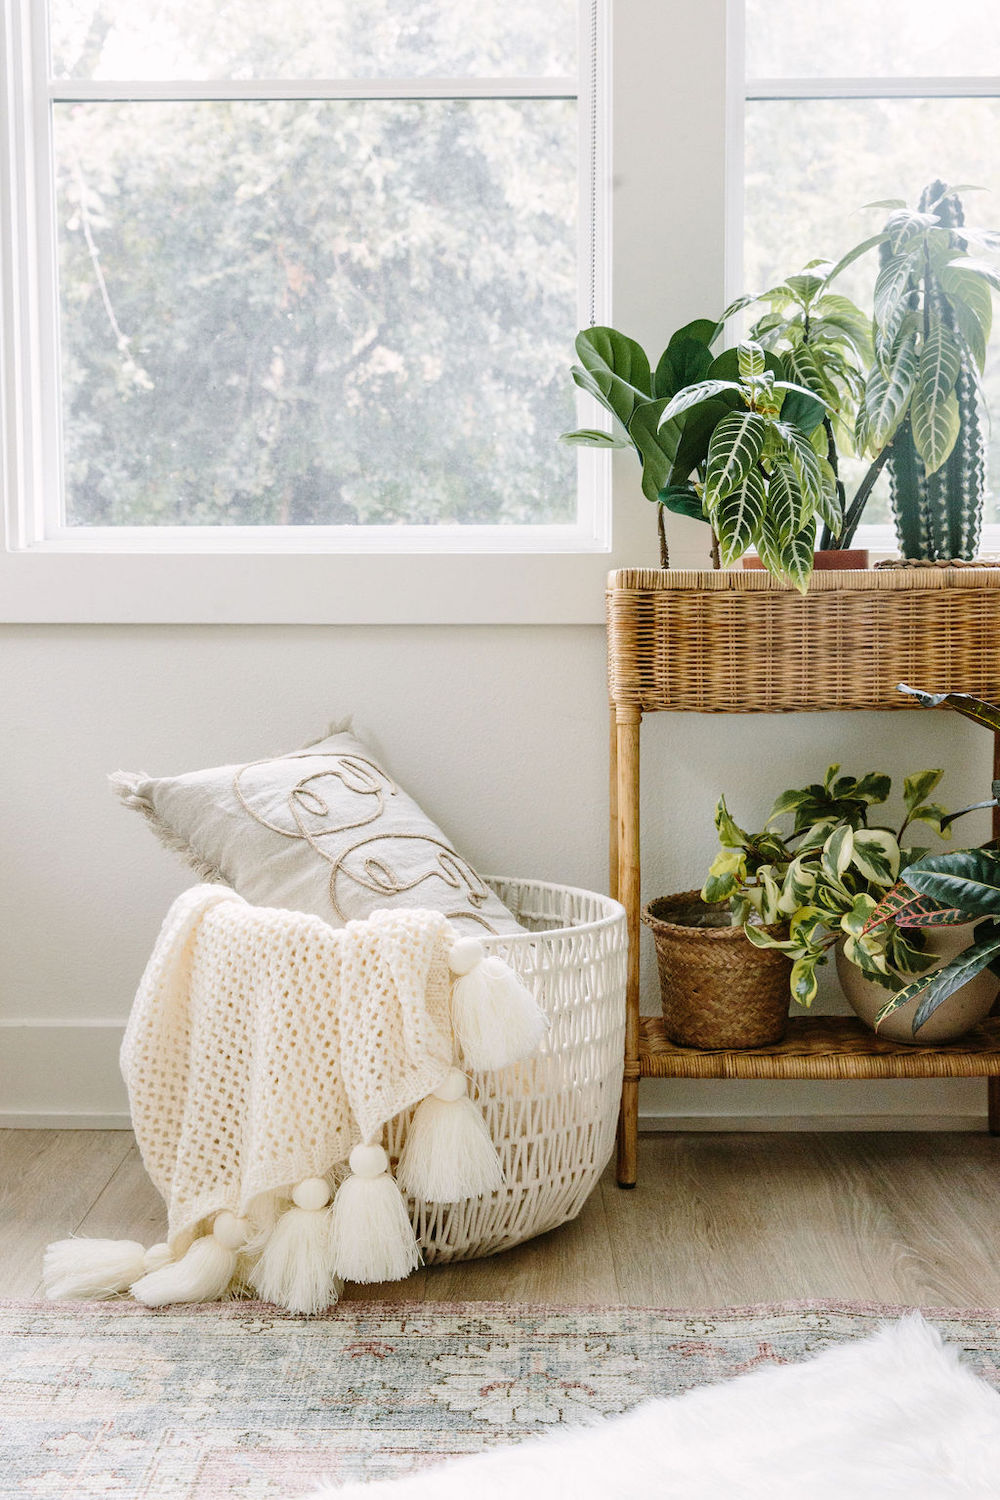 camille styles's austin office makeover with target